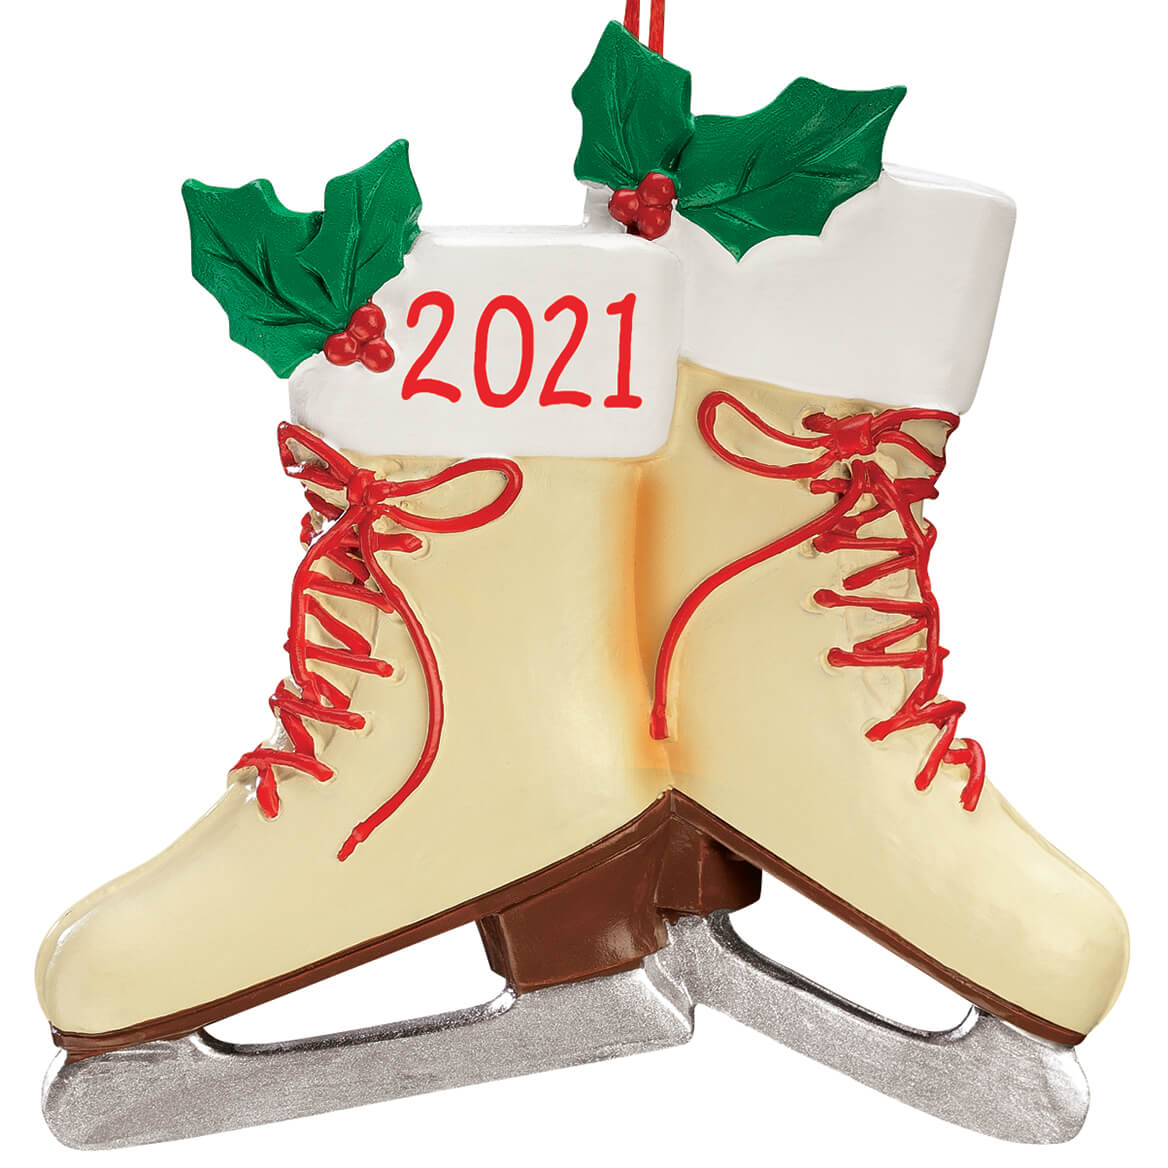 Personalized Vintage Ice Skates Ornament